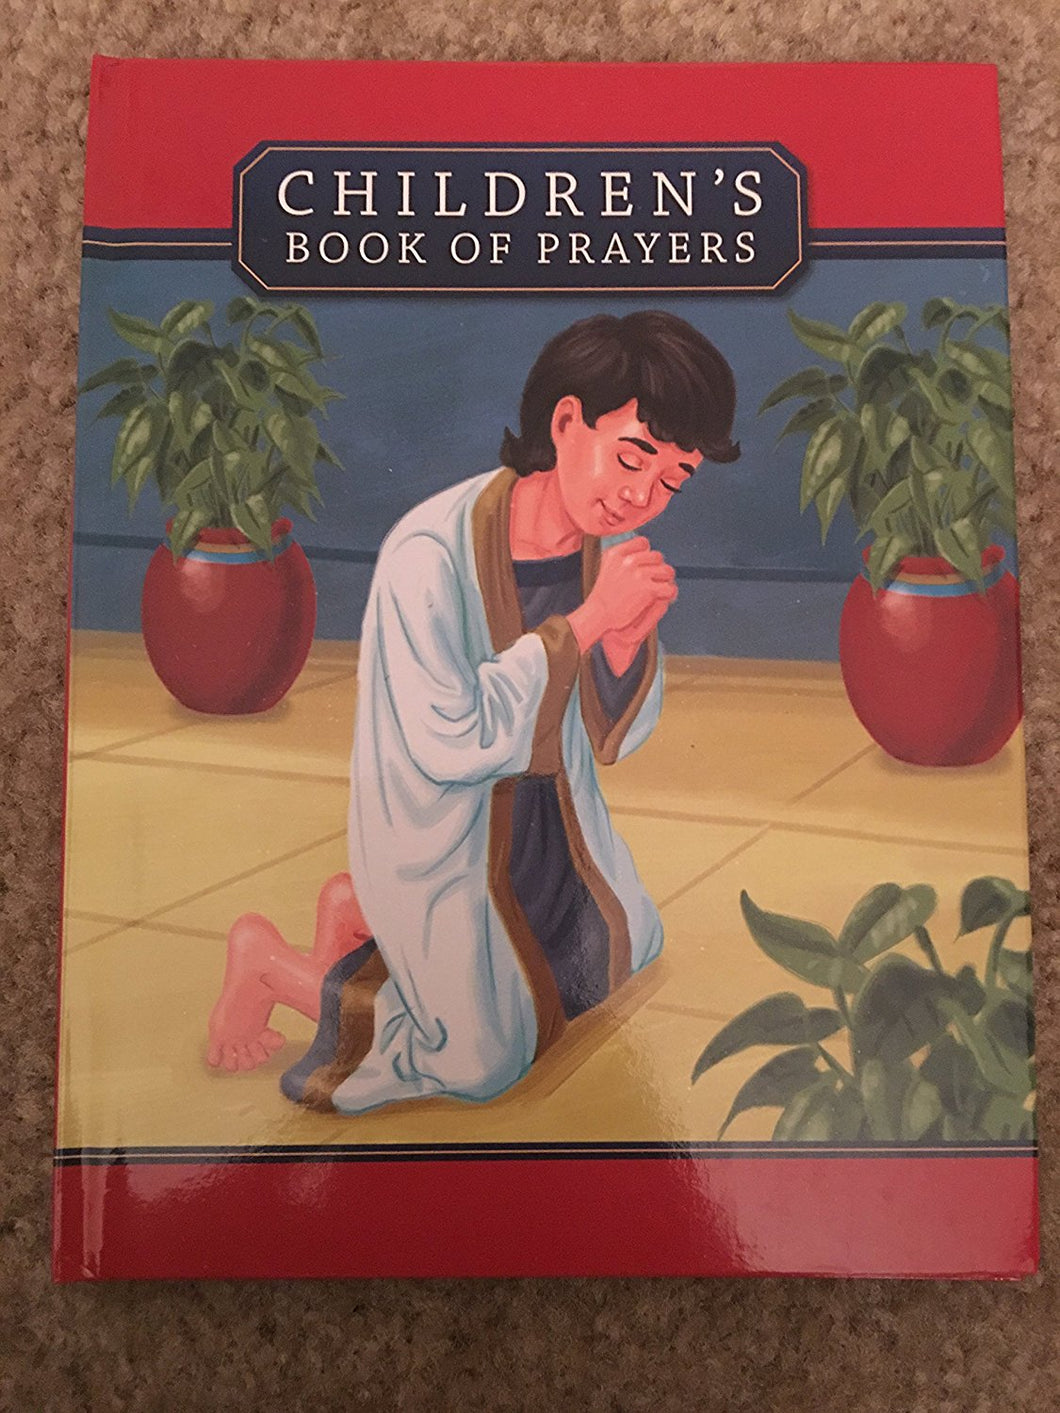 Children's Book of Prayers